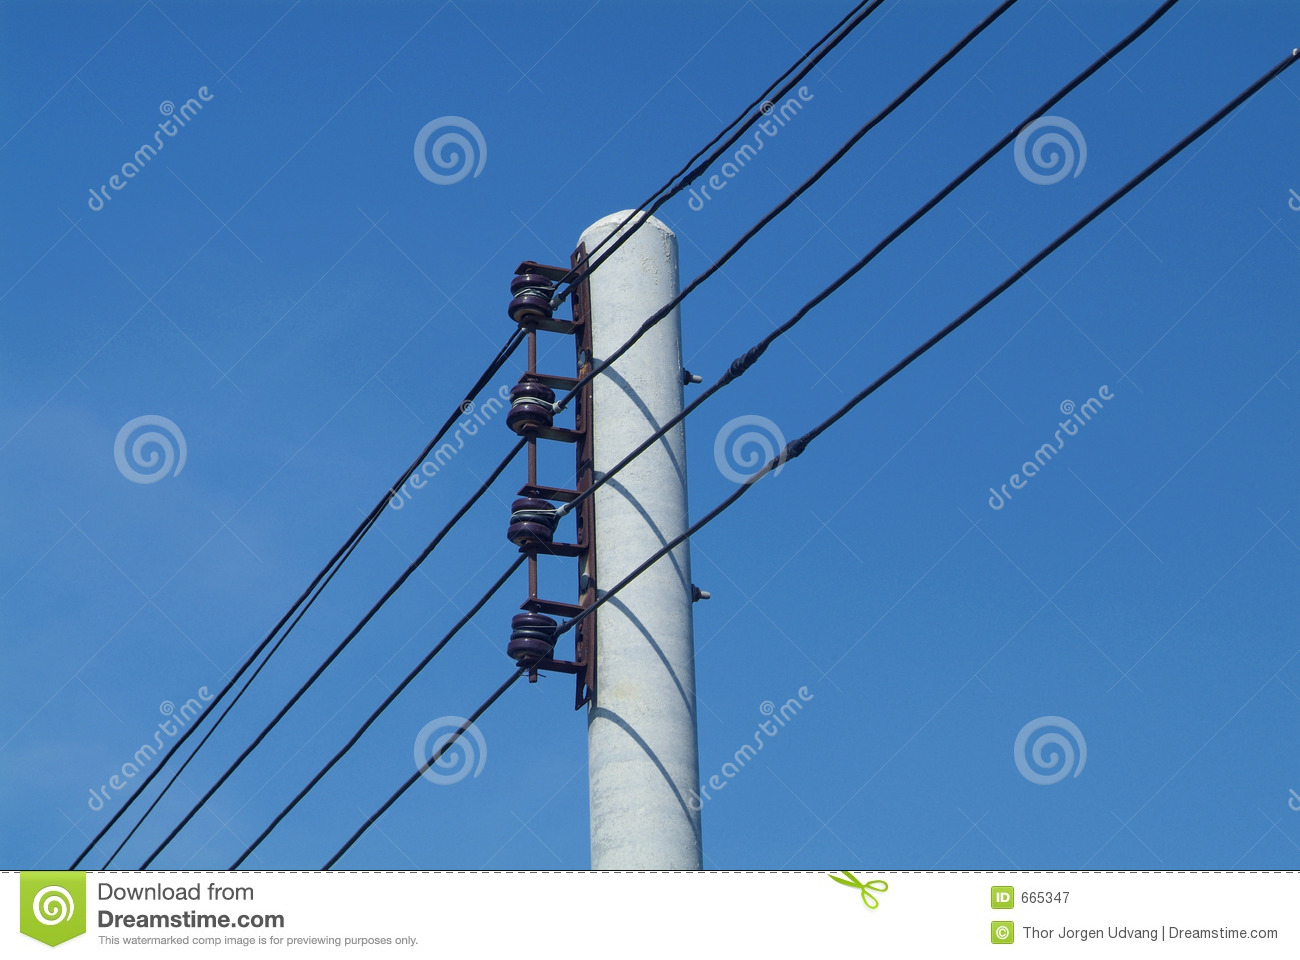 Wire Electric Power : Electrical wires on pole stock image of power grid